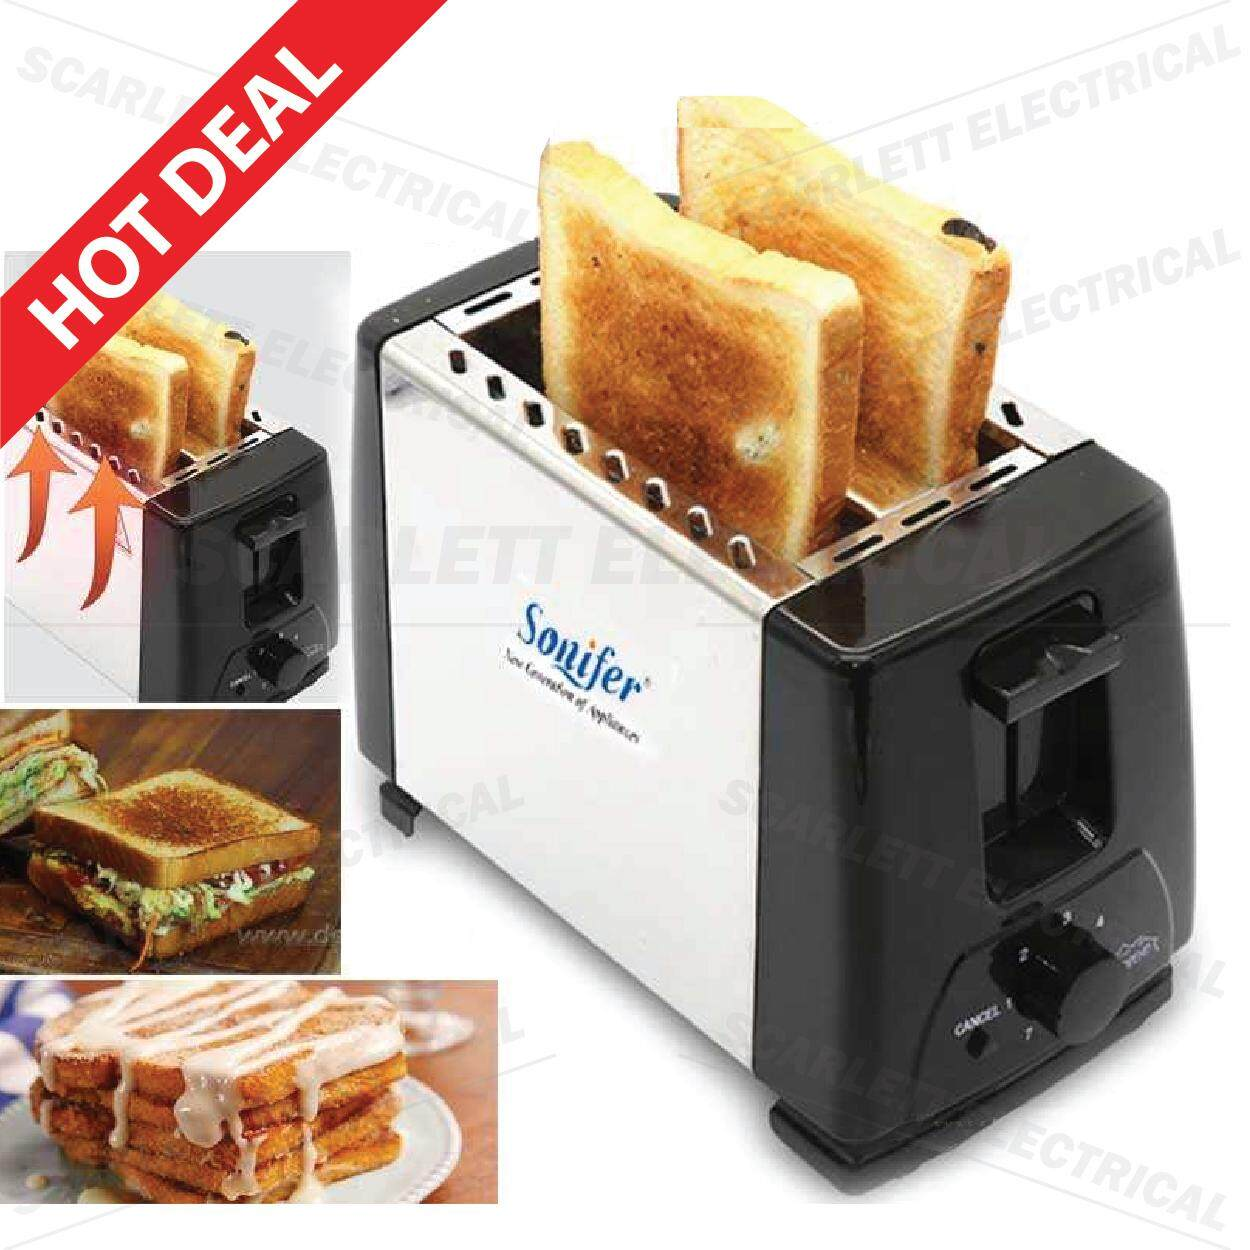 Stainless Steel 2 Slices Pop Up Toaster Bread Automatic Grill Machine By Target Online Trading.